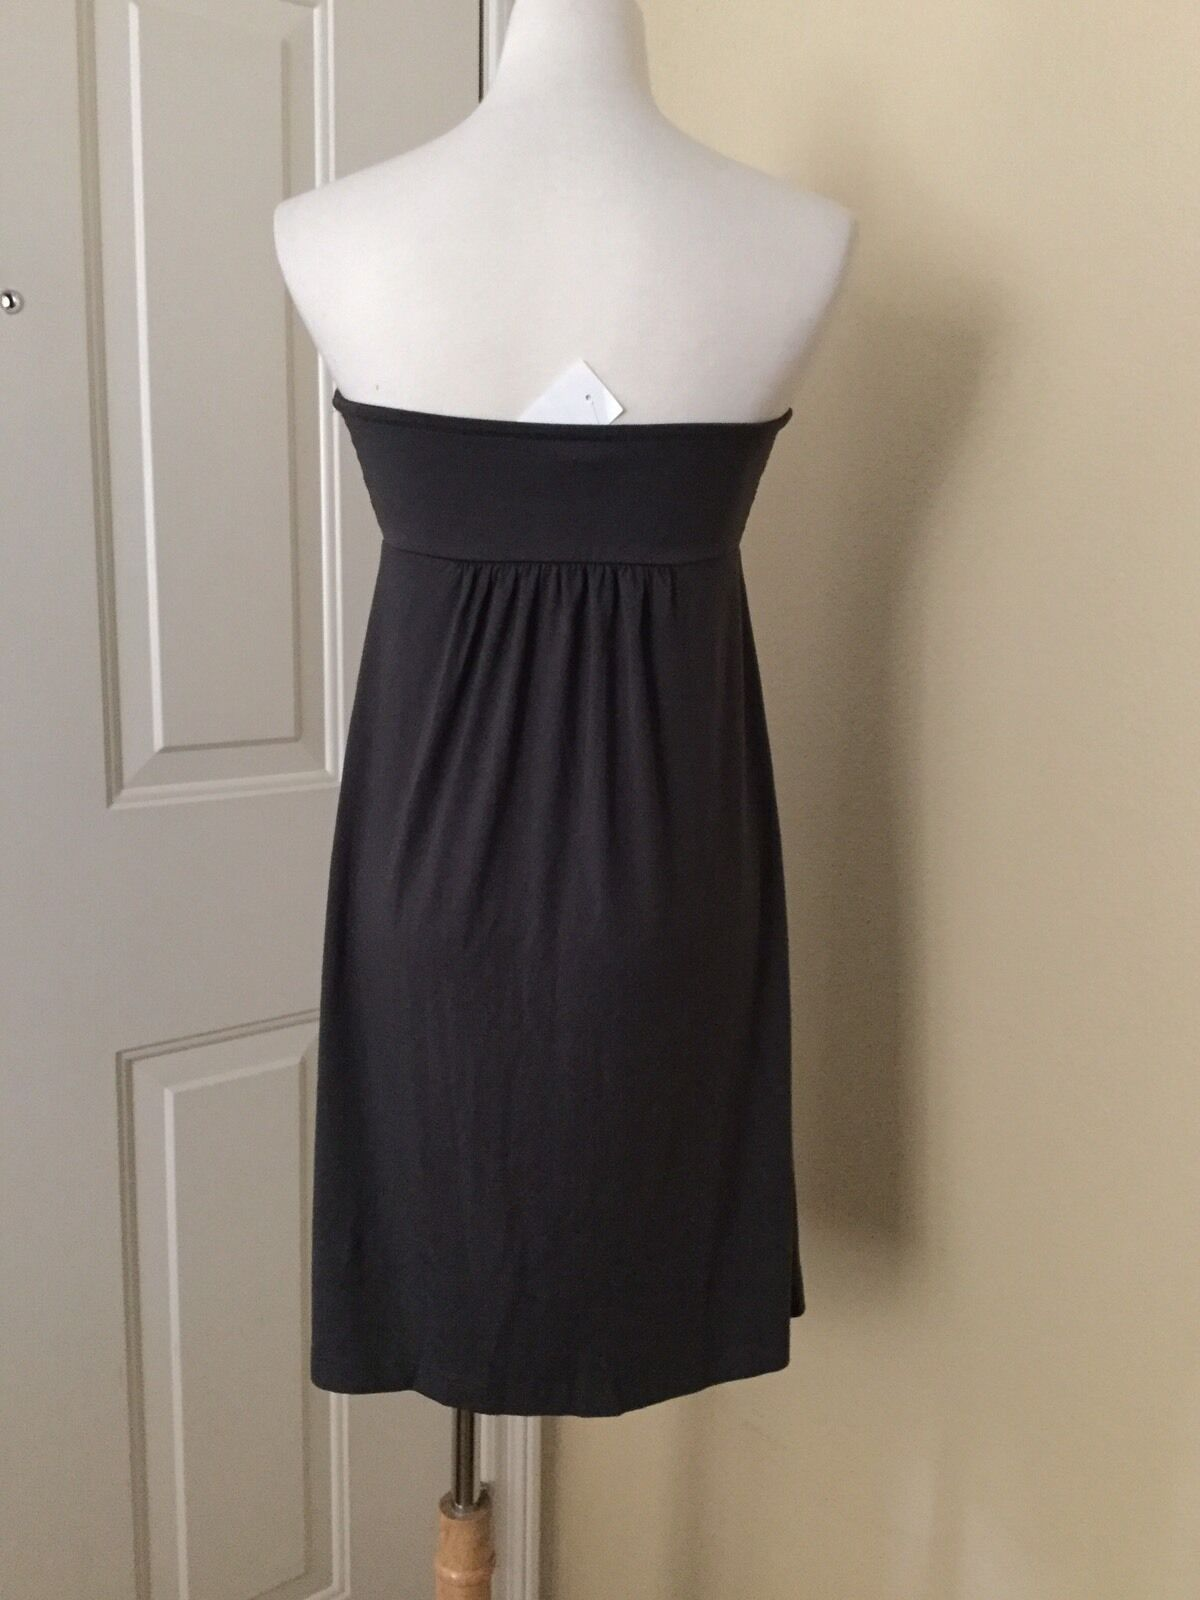 NWT J.CREW Dressy Jersey Strapless Dress in Gray, Size Small image 2